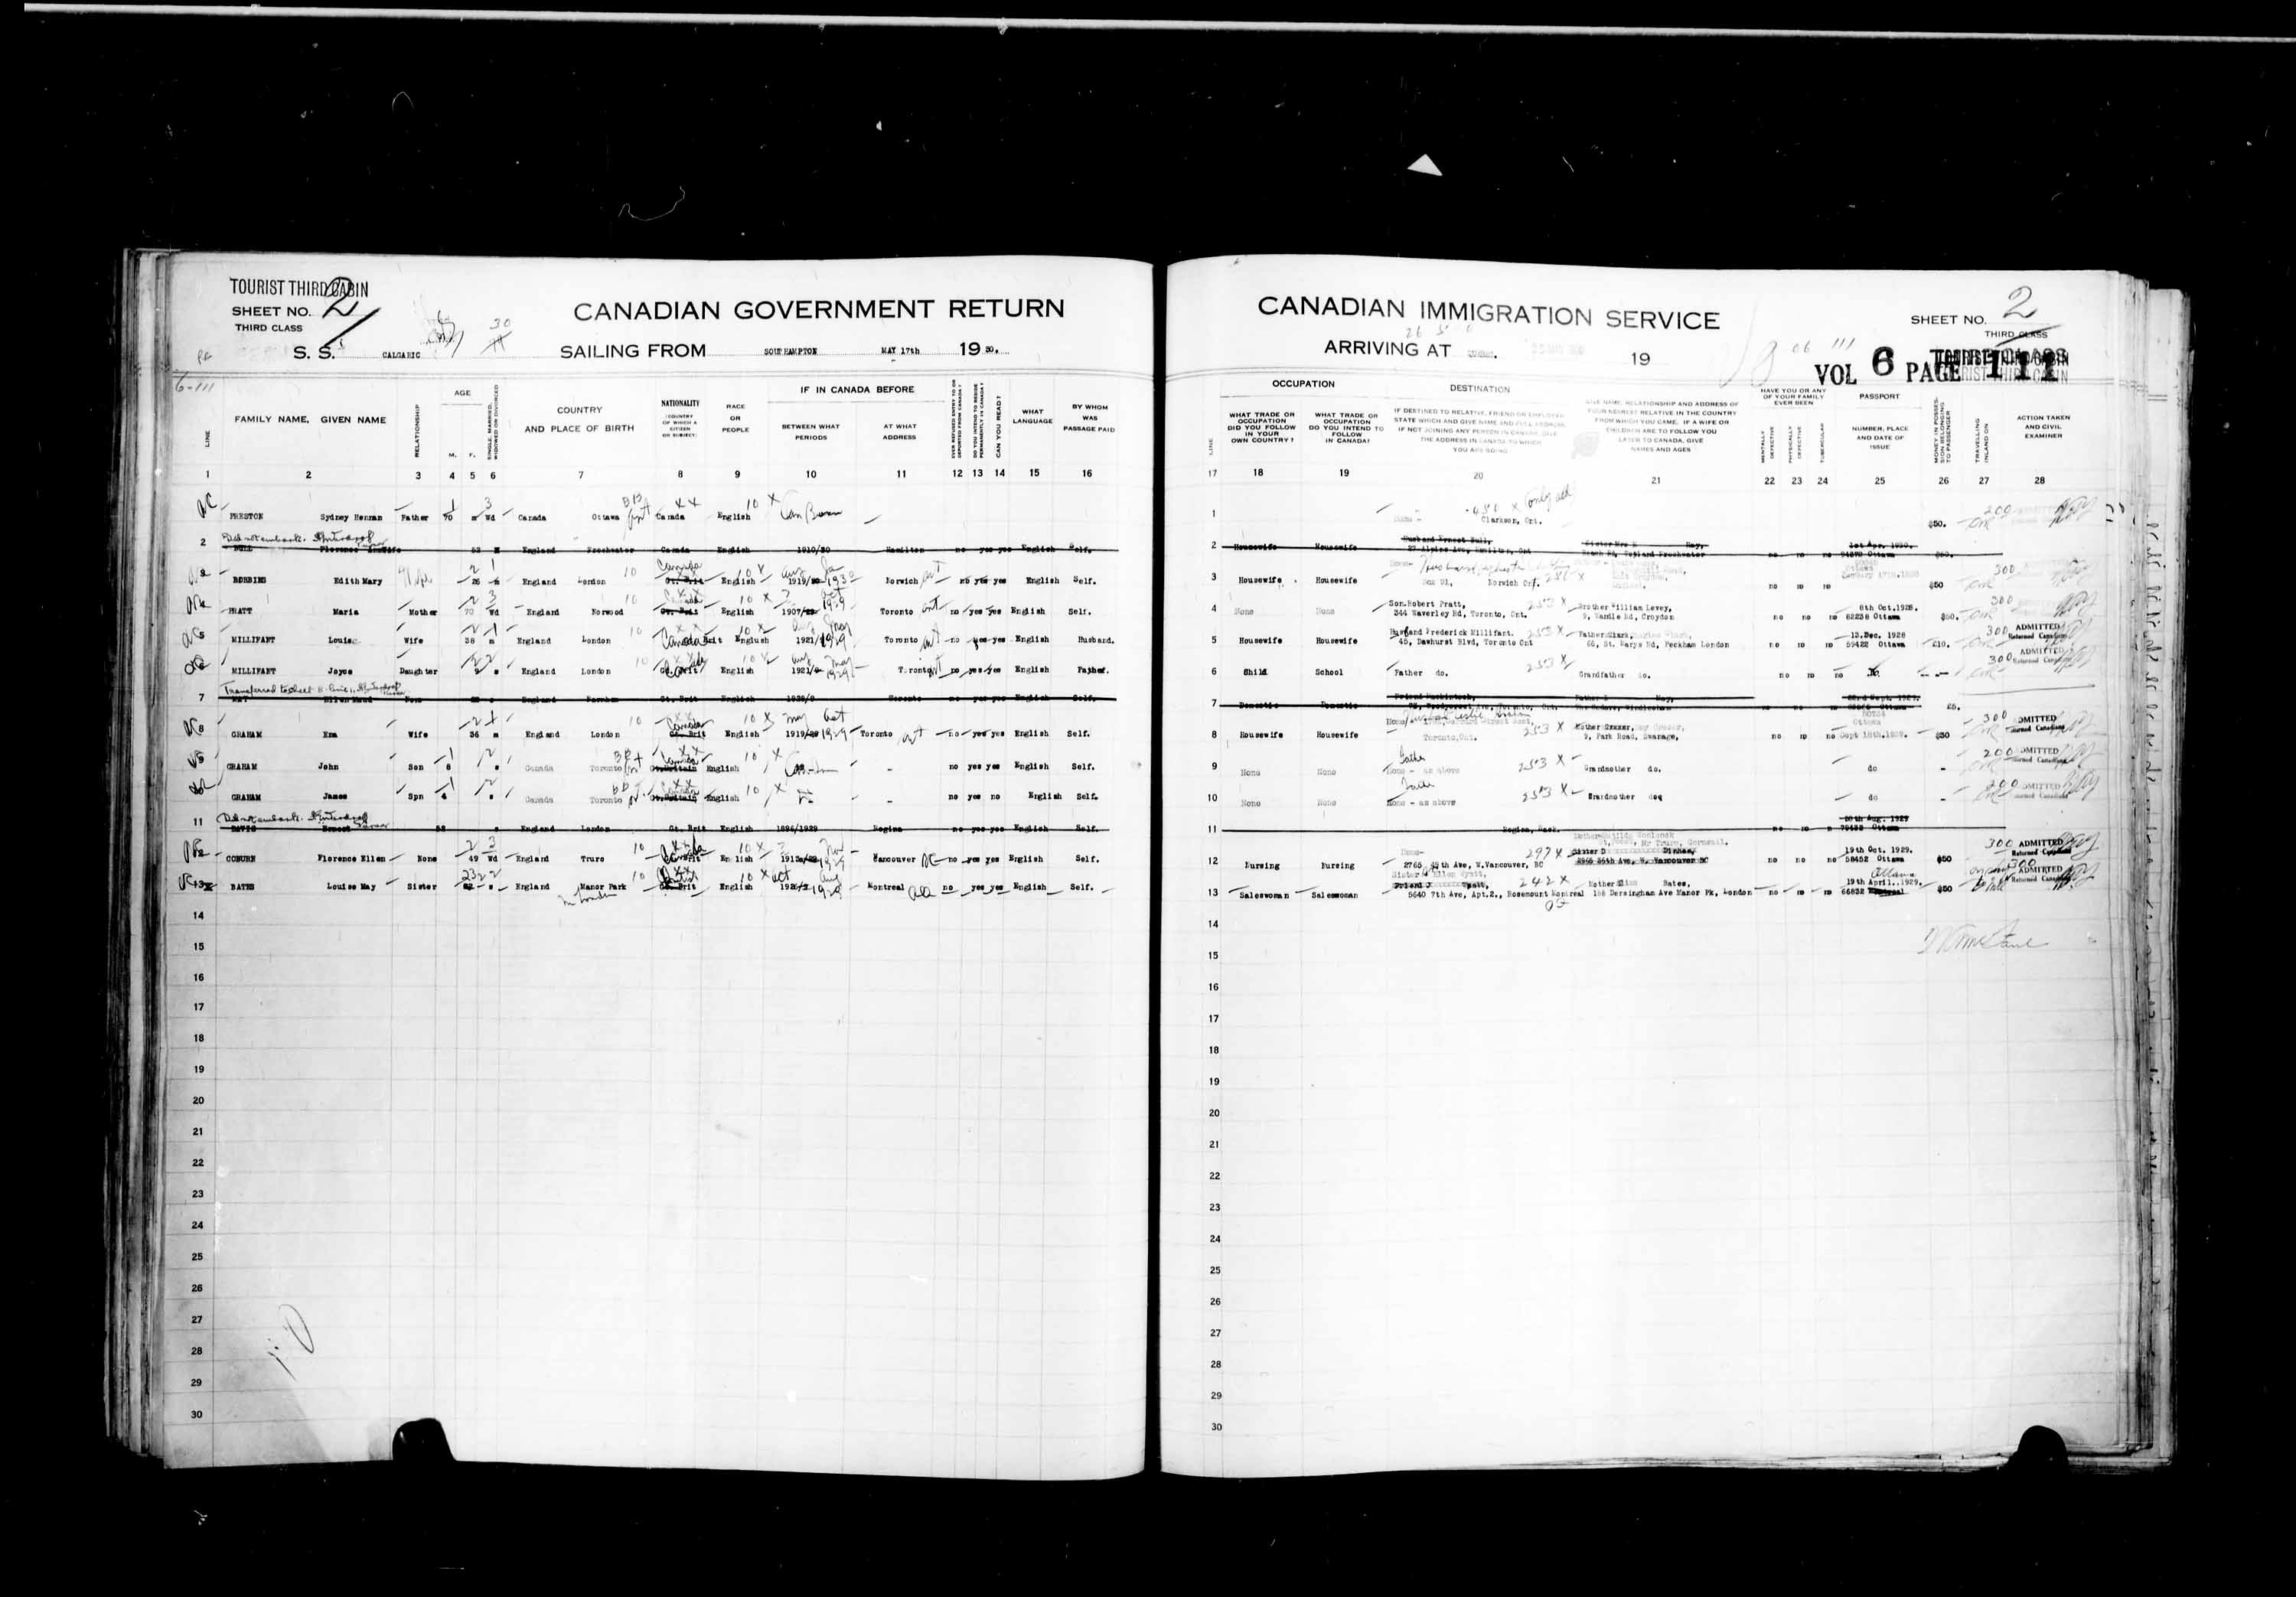 Title: Passenger Lists: Quebec City (1925-1935) - Mikan Number: 134839 - Microform: t-14763